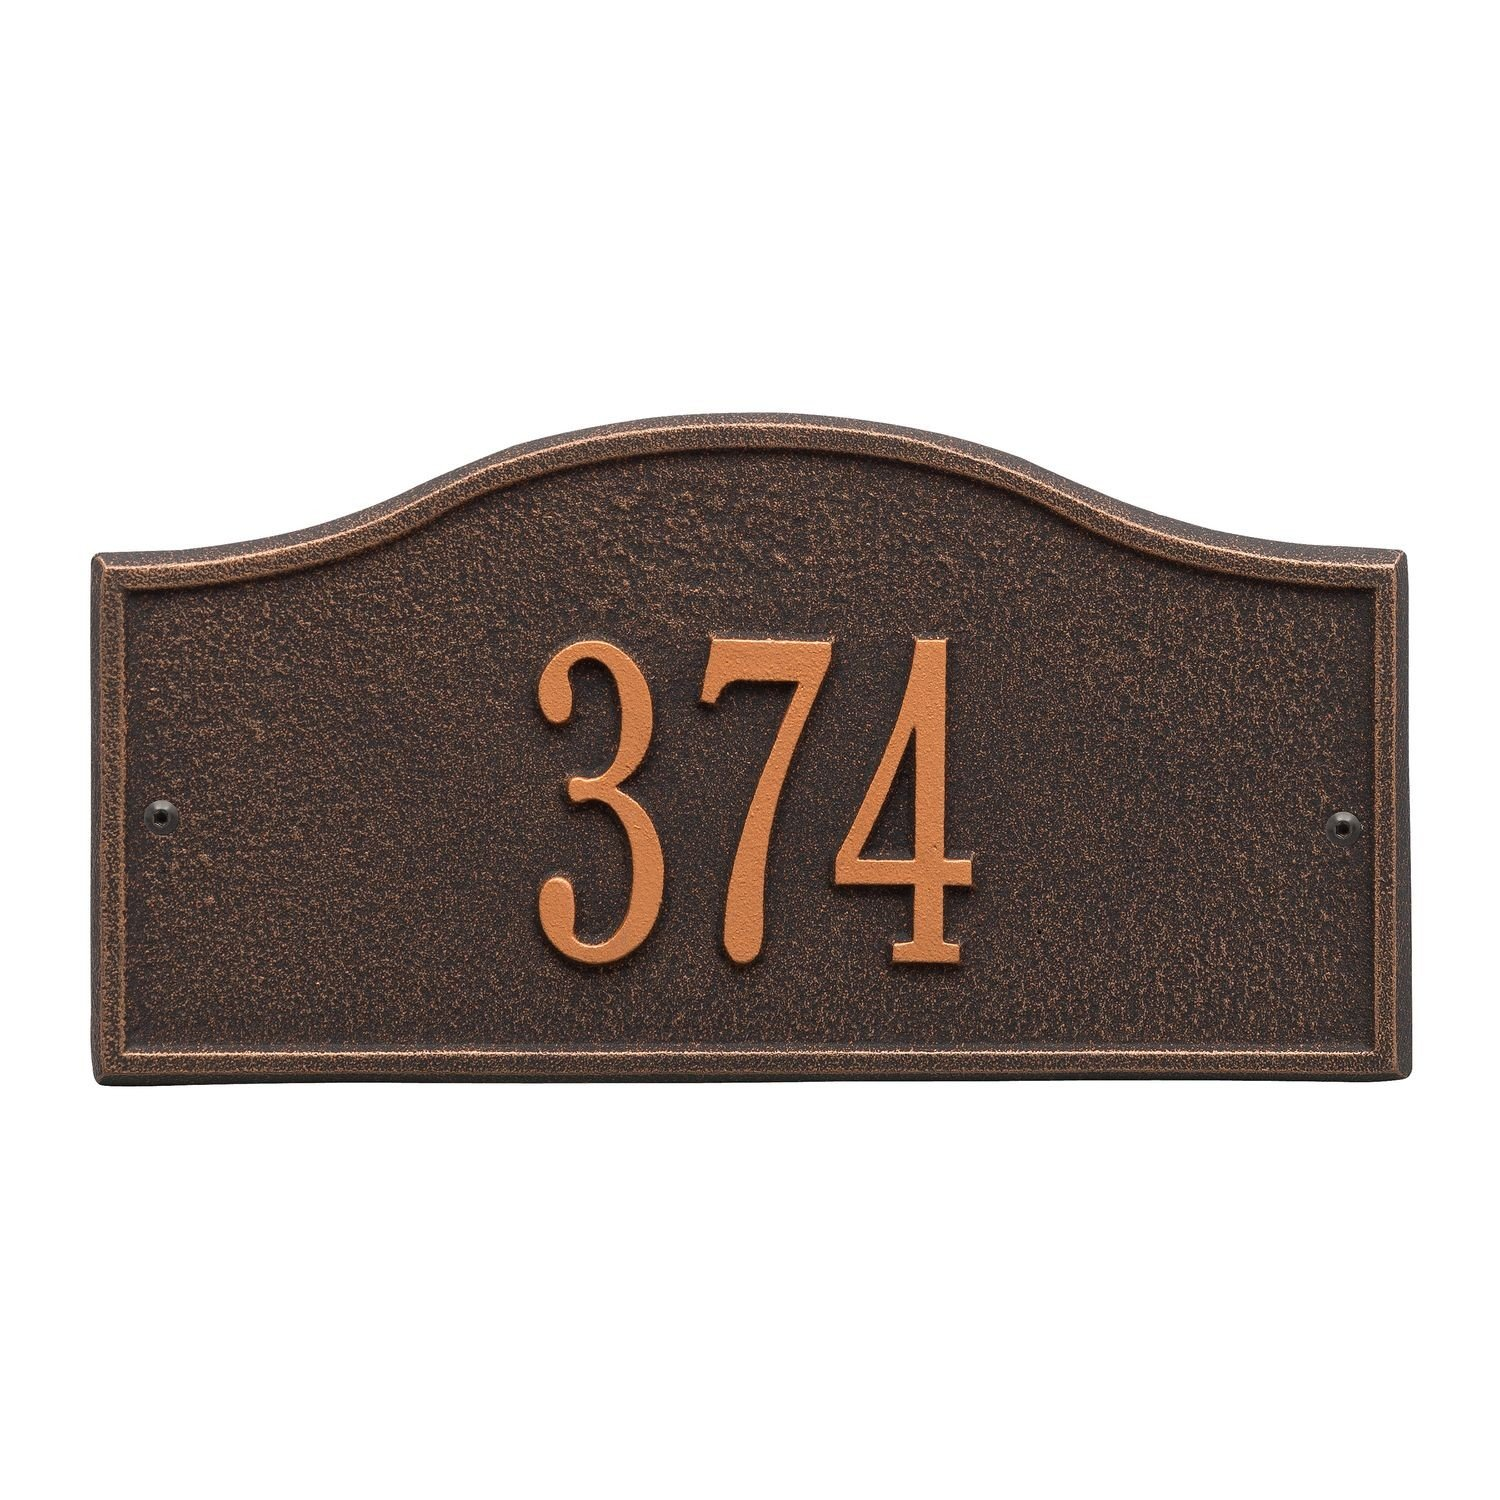 Whitehall Personalized Cast Metal Address Plaque - Small Rolling Hills Custom House Number Sign - 12'' x 6'' - Allows Special Characters - Bronze